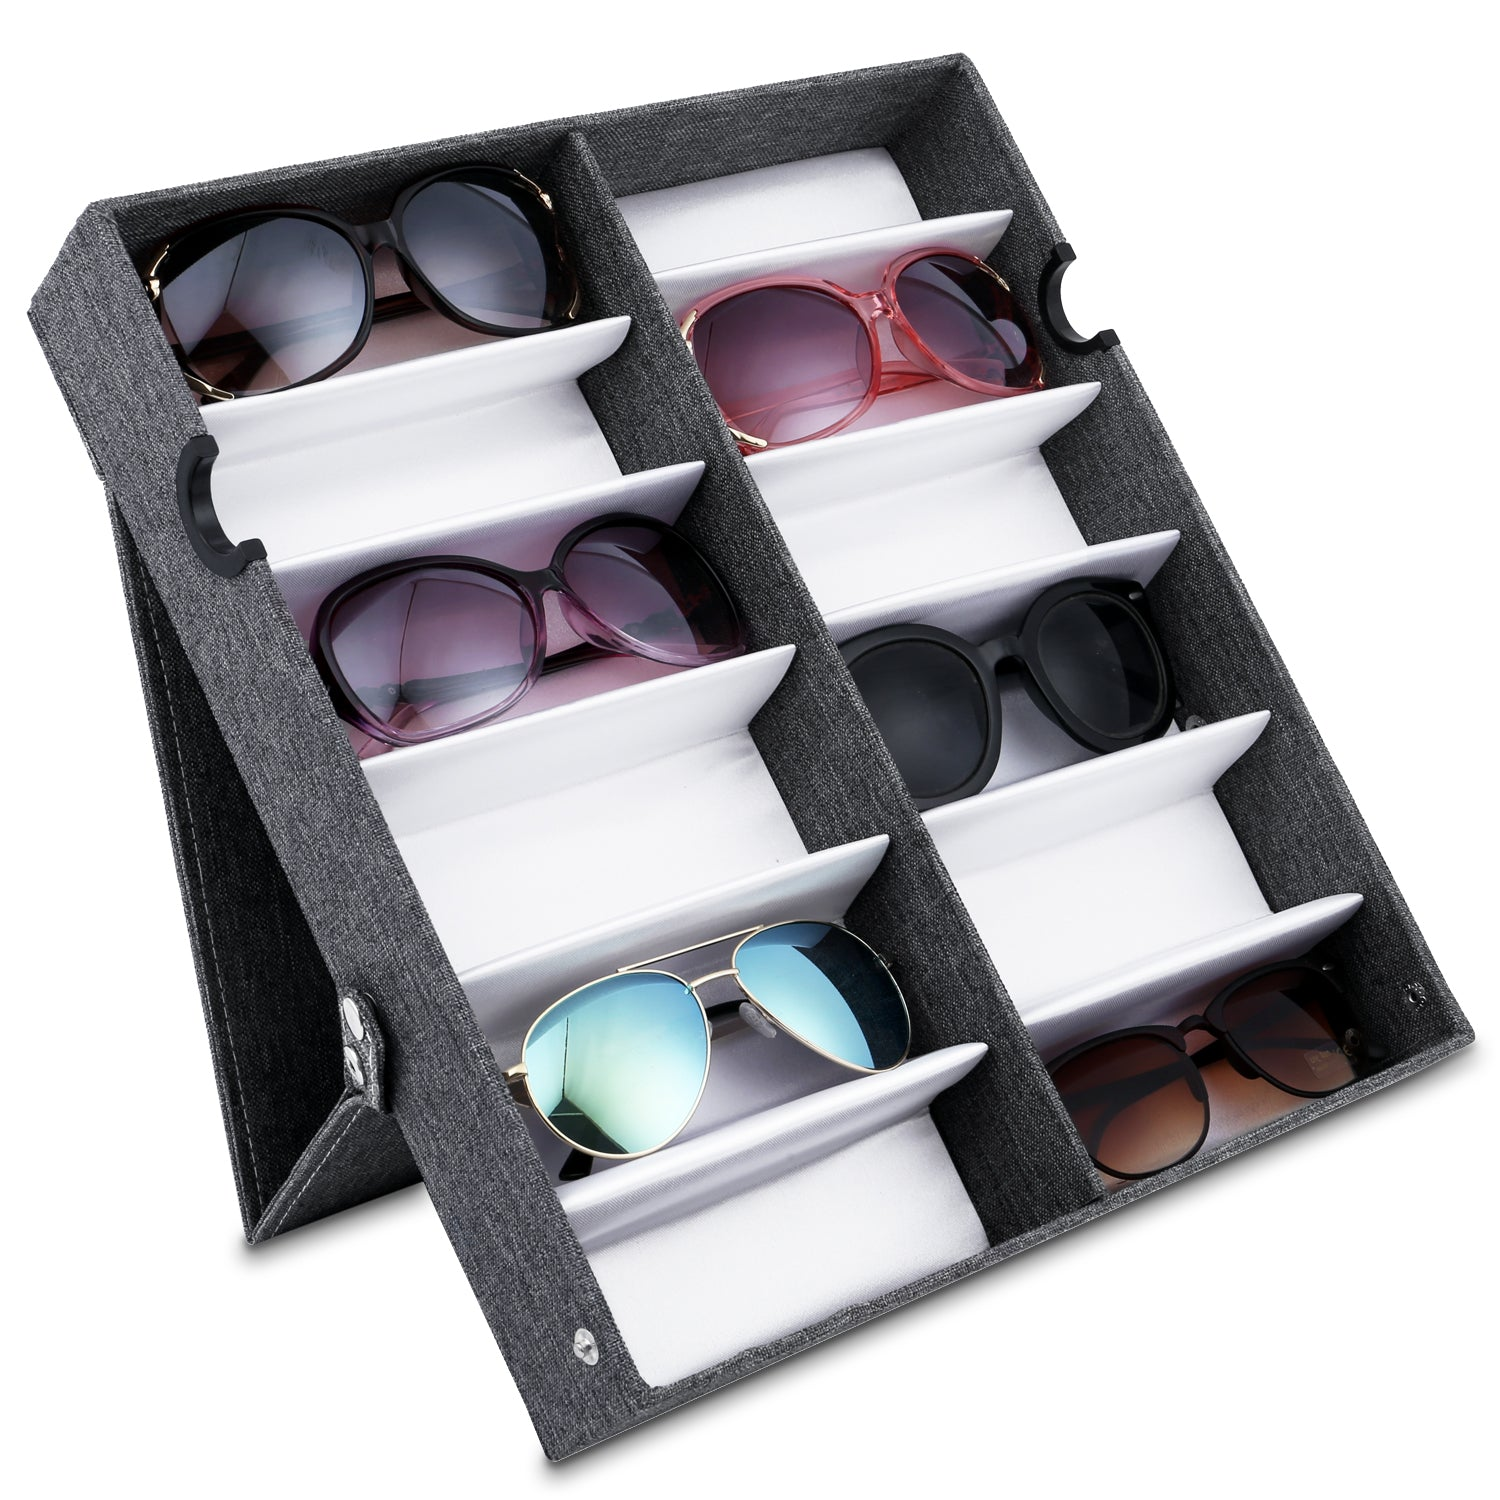 #TR-34VFL-LNG Eyewears Organizer Box - 12 Slots Eyewear Display Tray